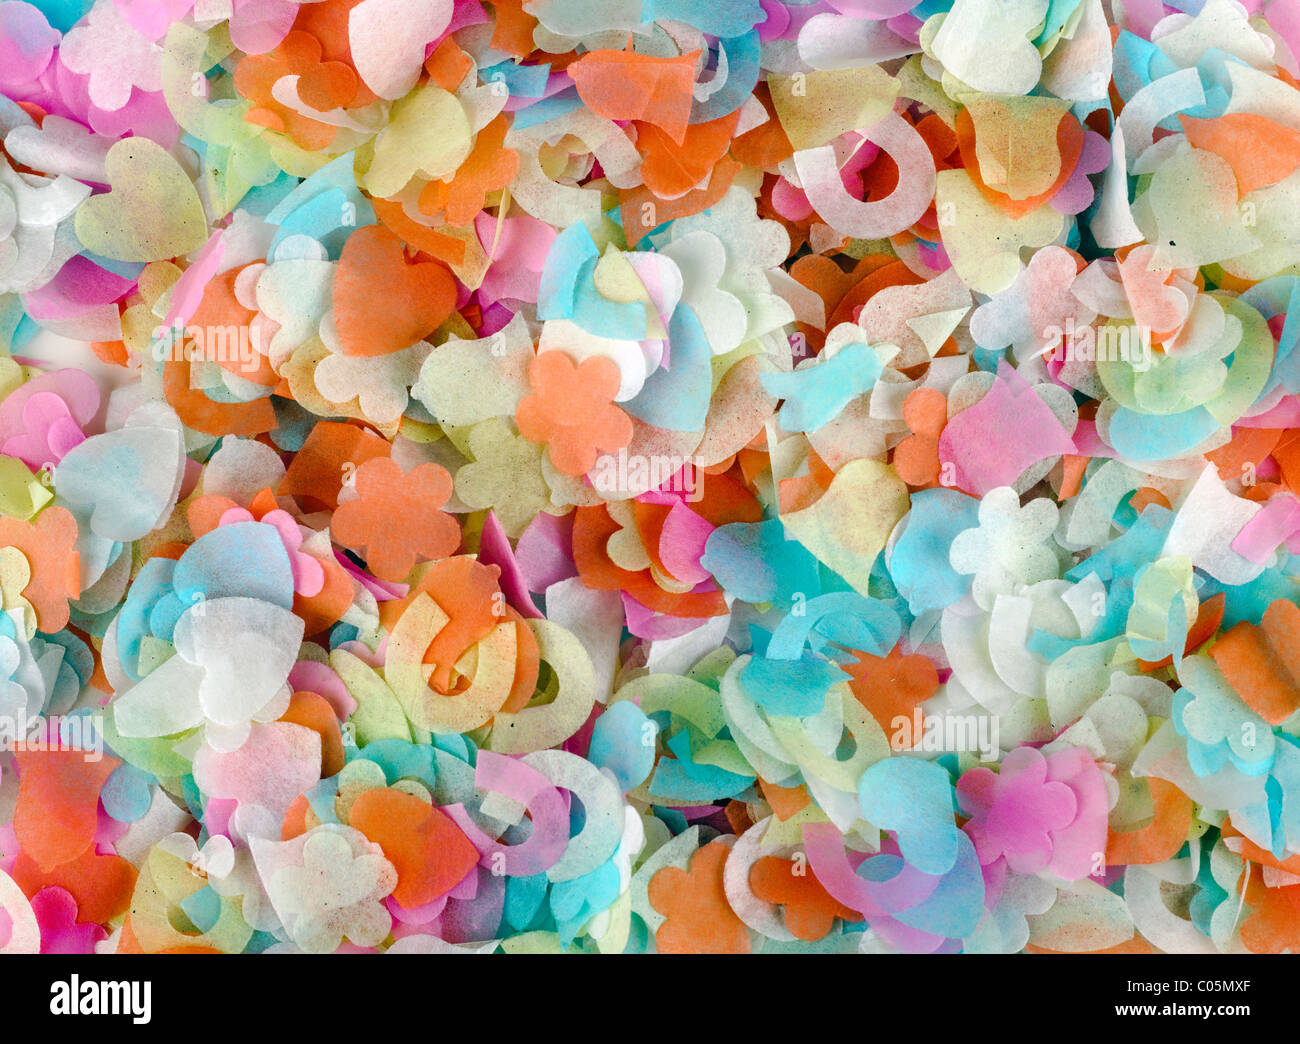 Pile of conffetti - Stock Image